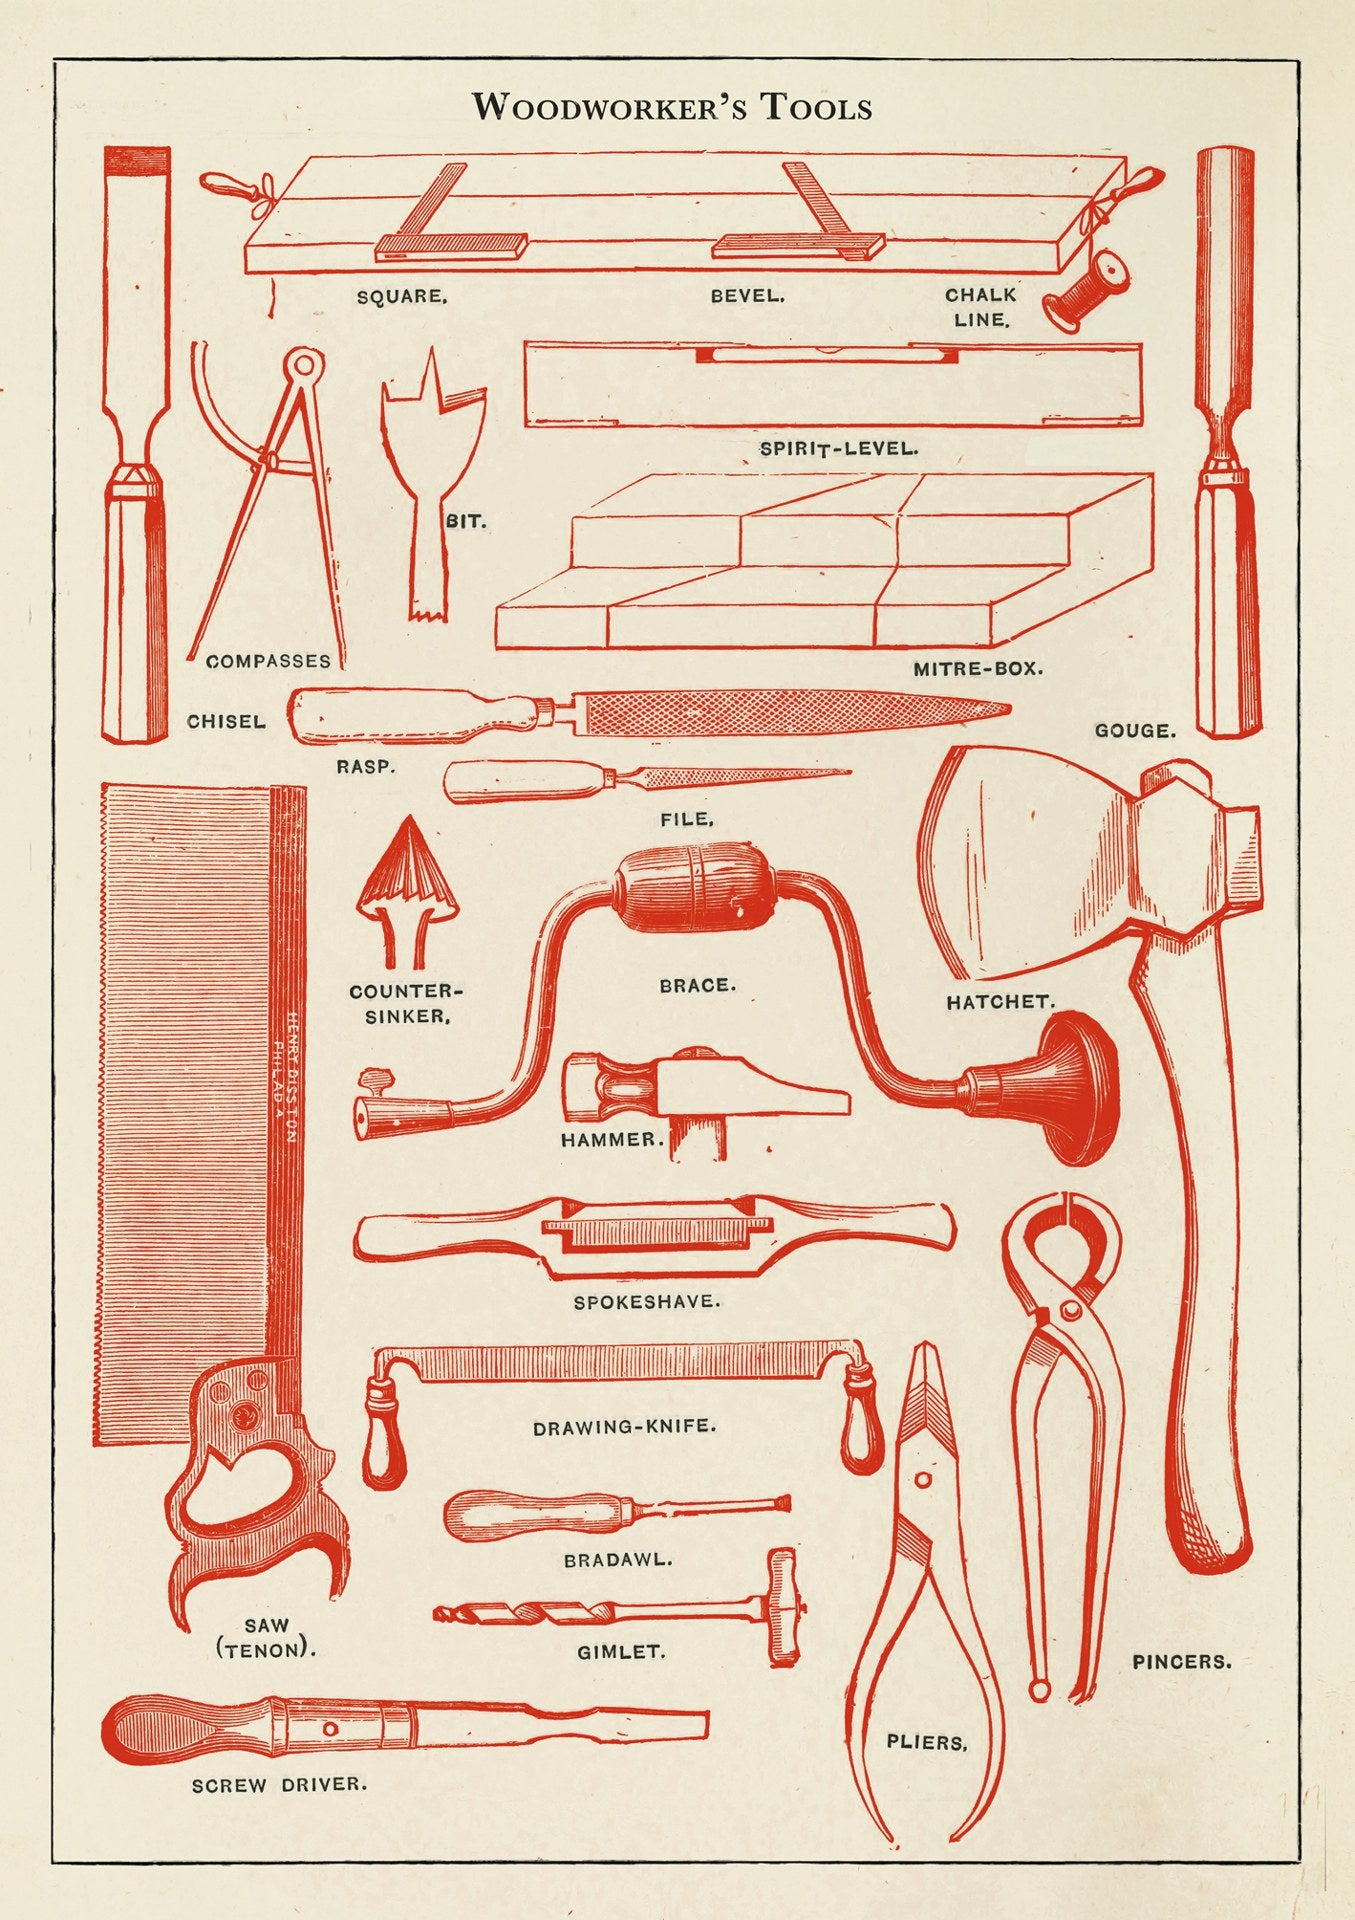 Woodworker's Tools Card